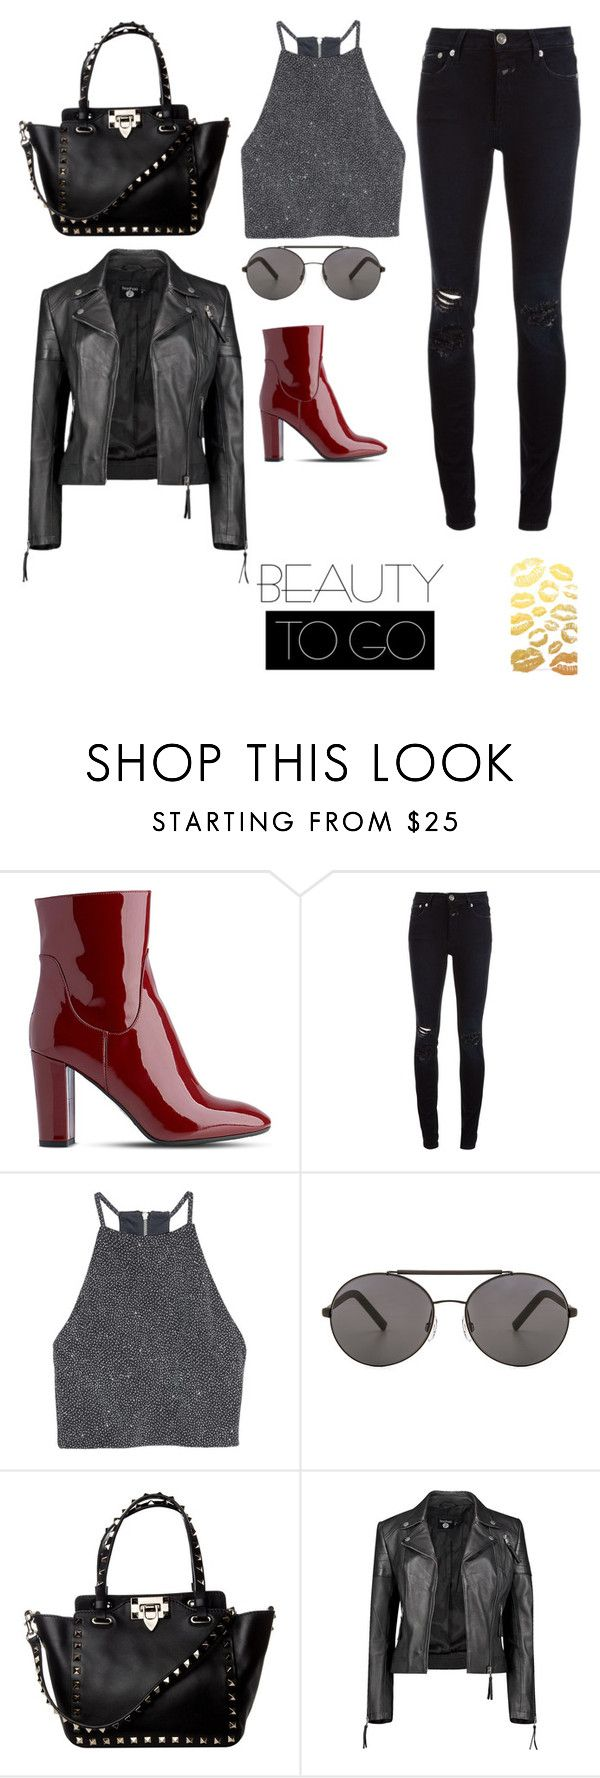 """#All black"" by joe-khulan on Polyvore featuring L.K.Bennett, Closed, H&M, Seafolly and Boohoo"